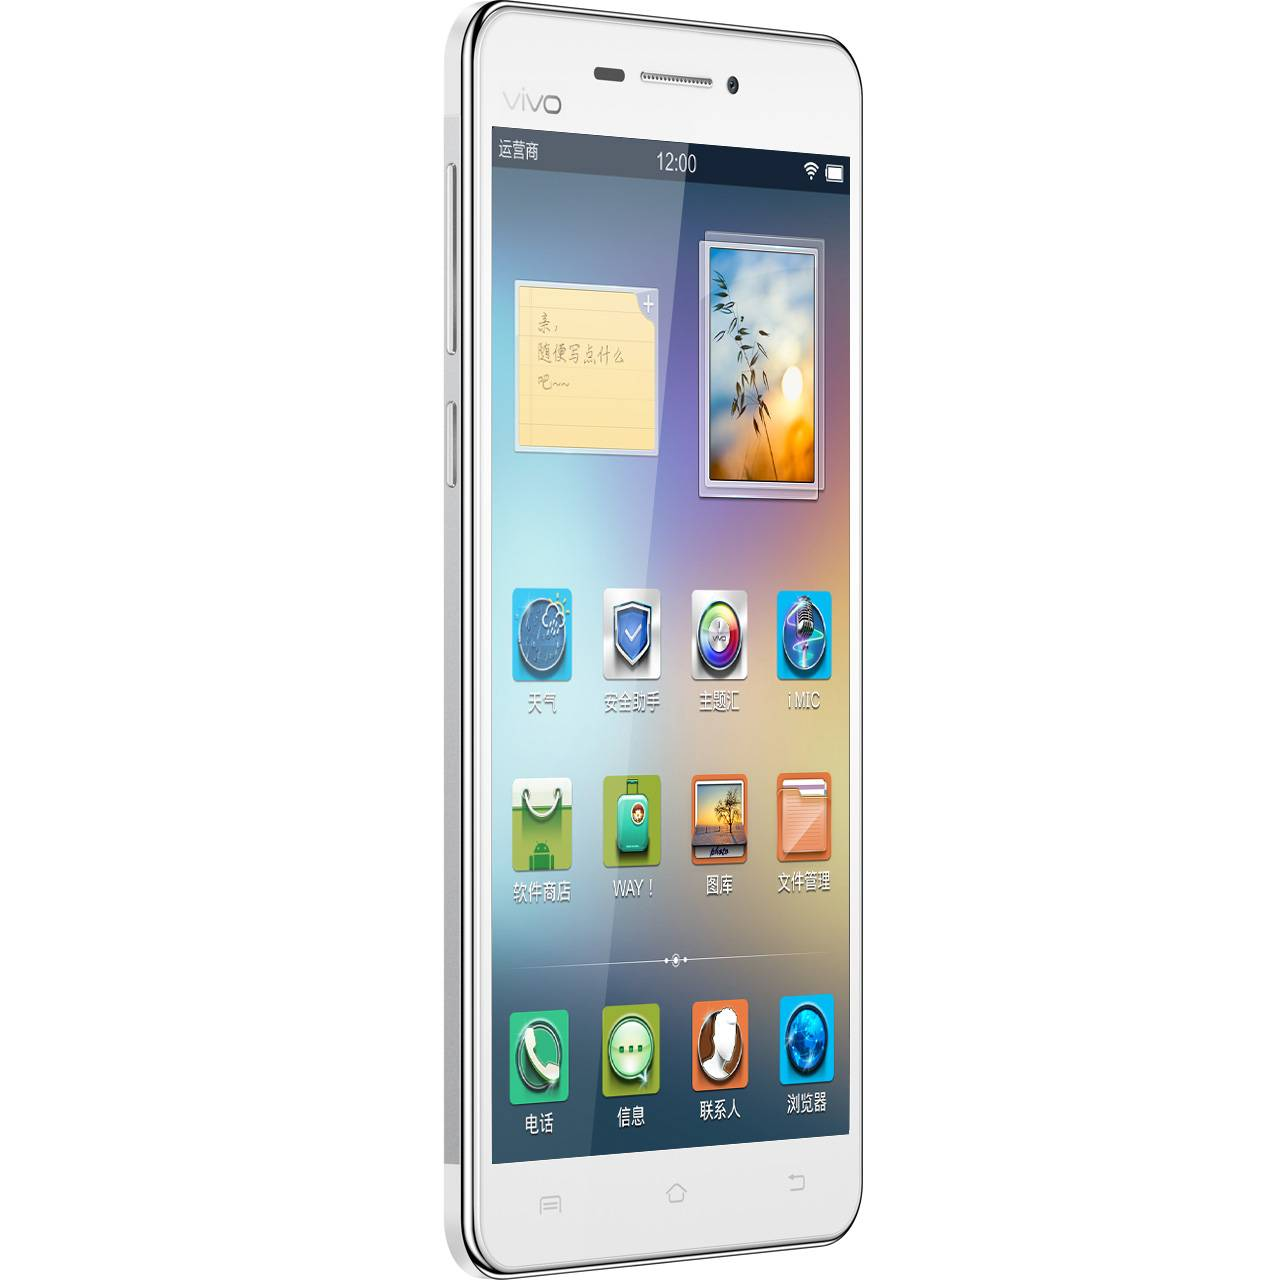 Vivo X3 is here, world's thinnest phone so far - Android